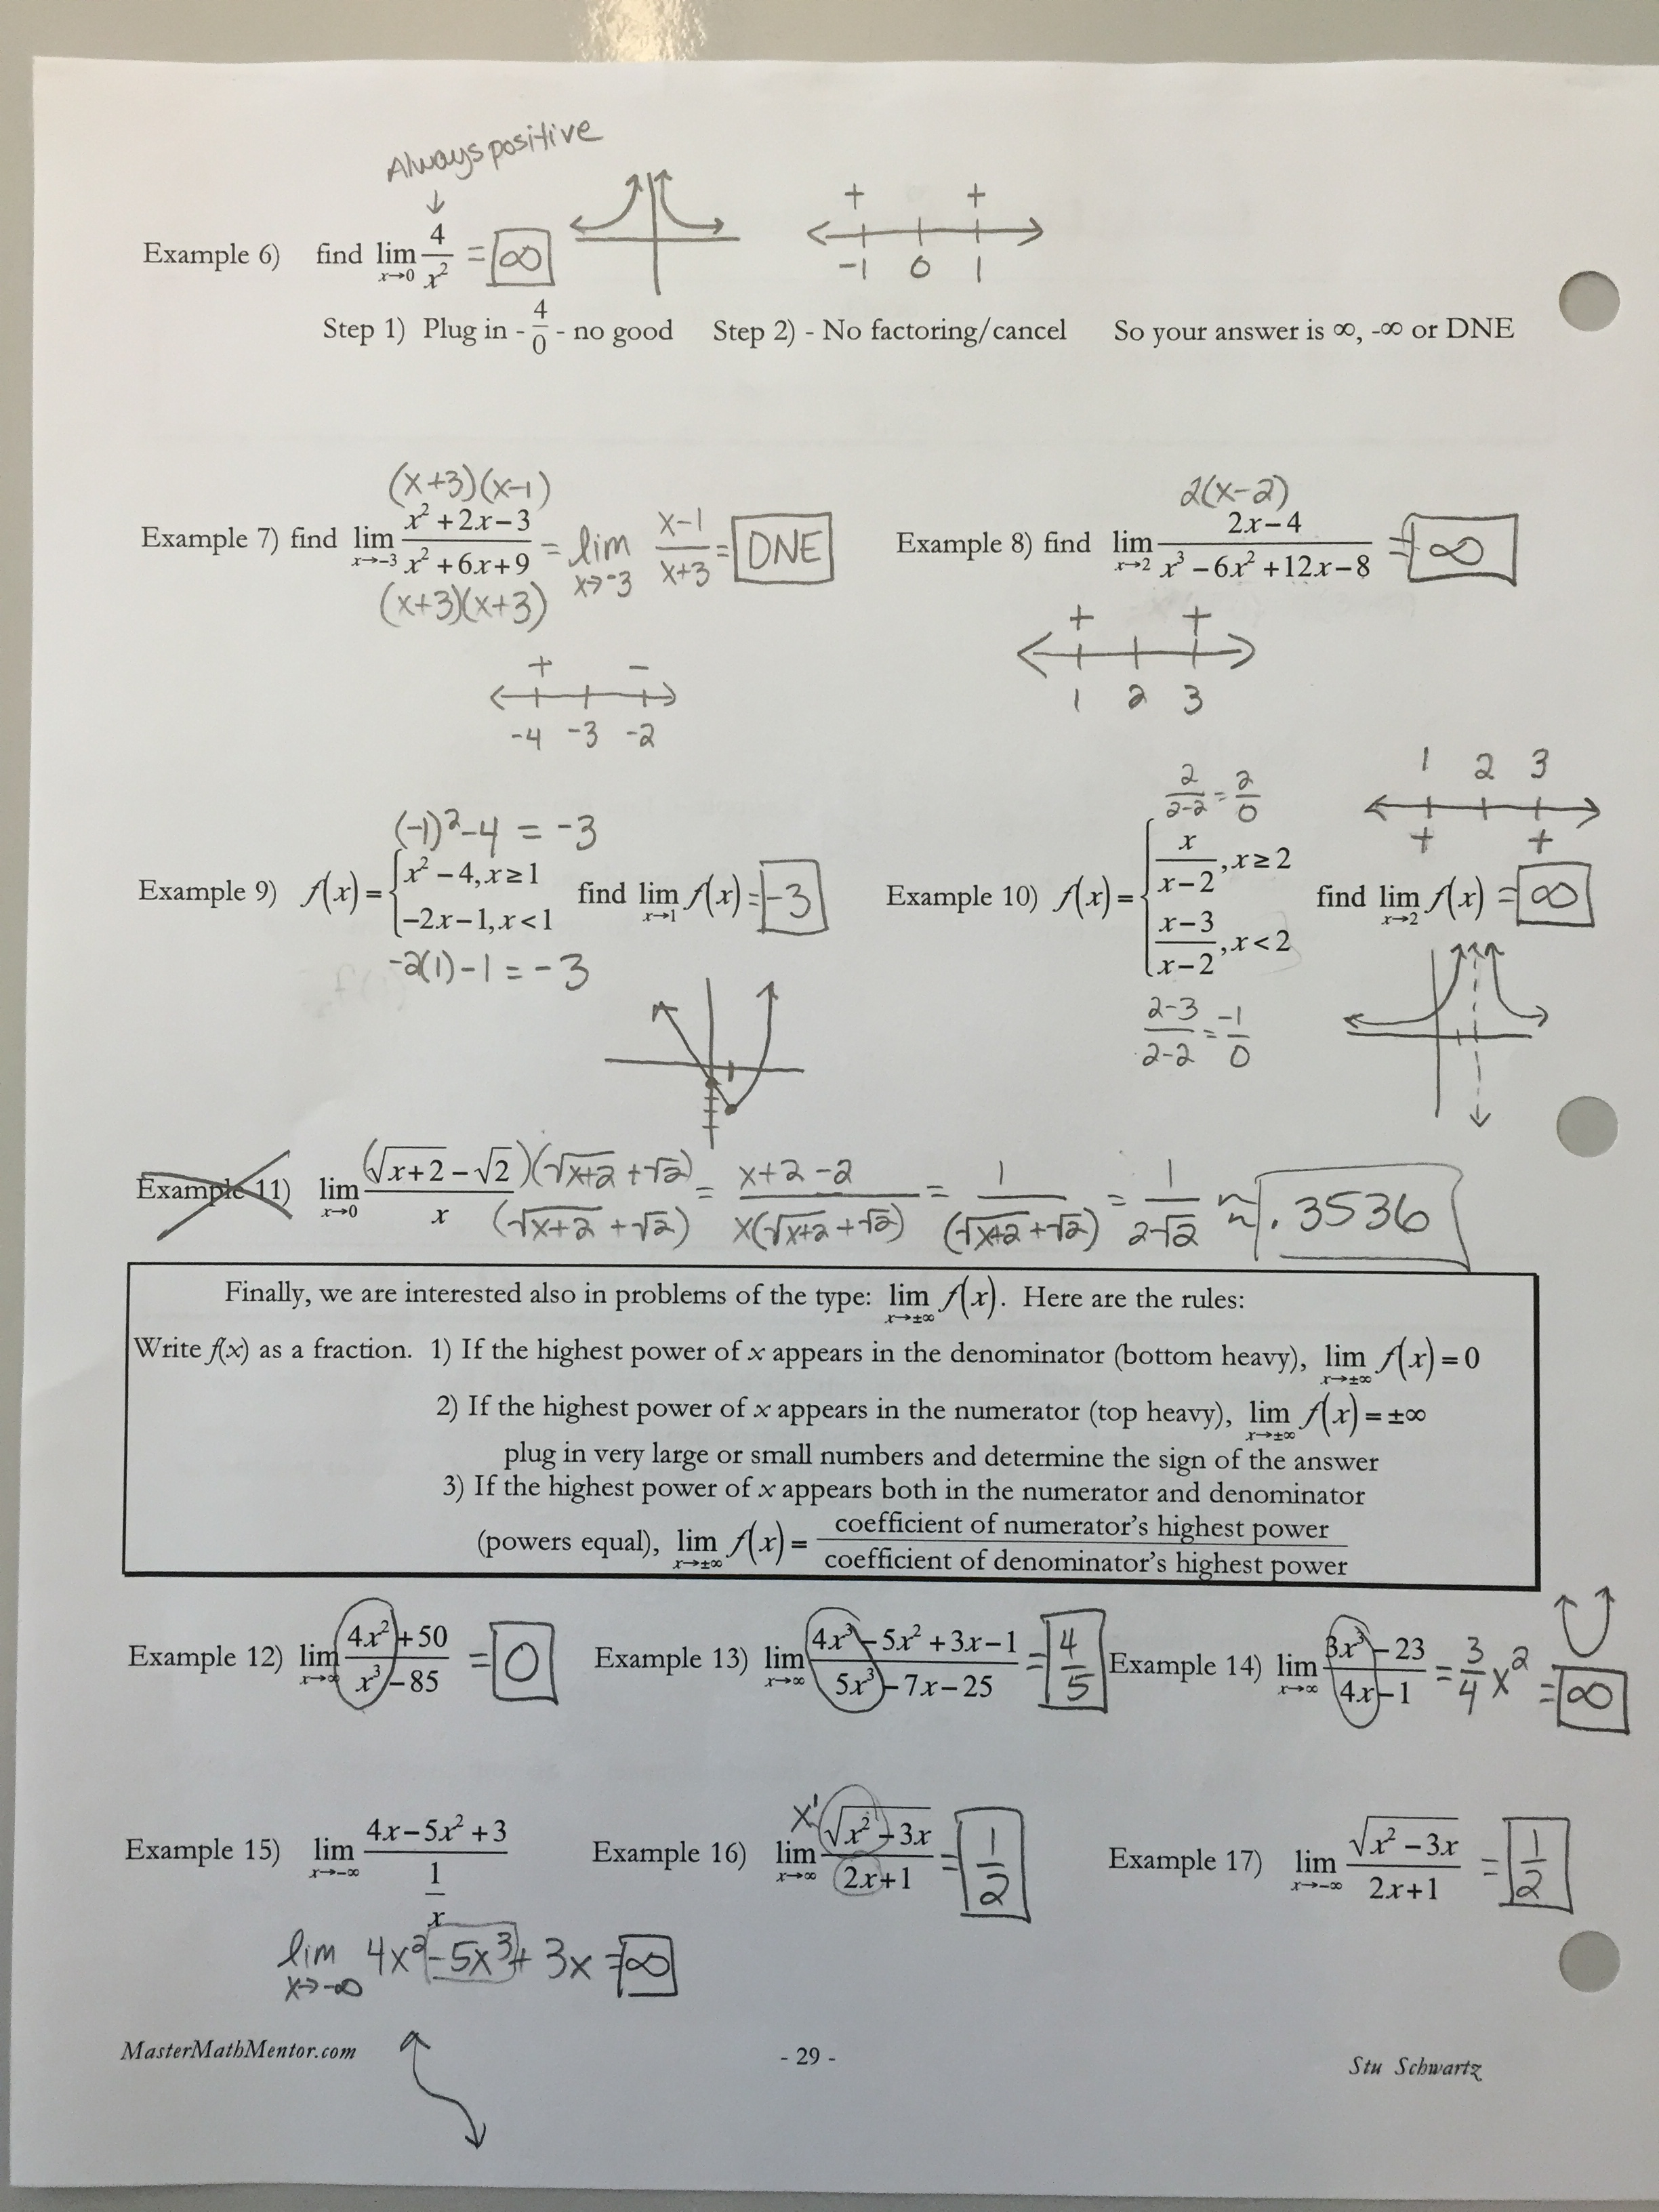 019 Essay Example Limits Algebraic Answers Page An On Sensational Criticism Lines 233 To 415 Part 3 Analysis Pdf Full